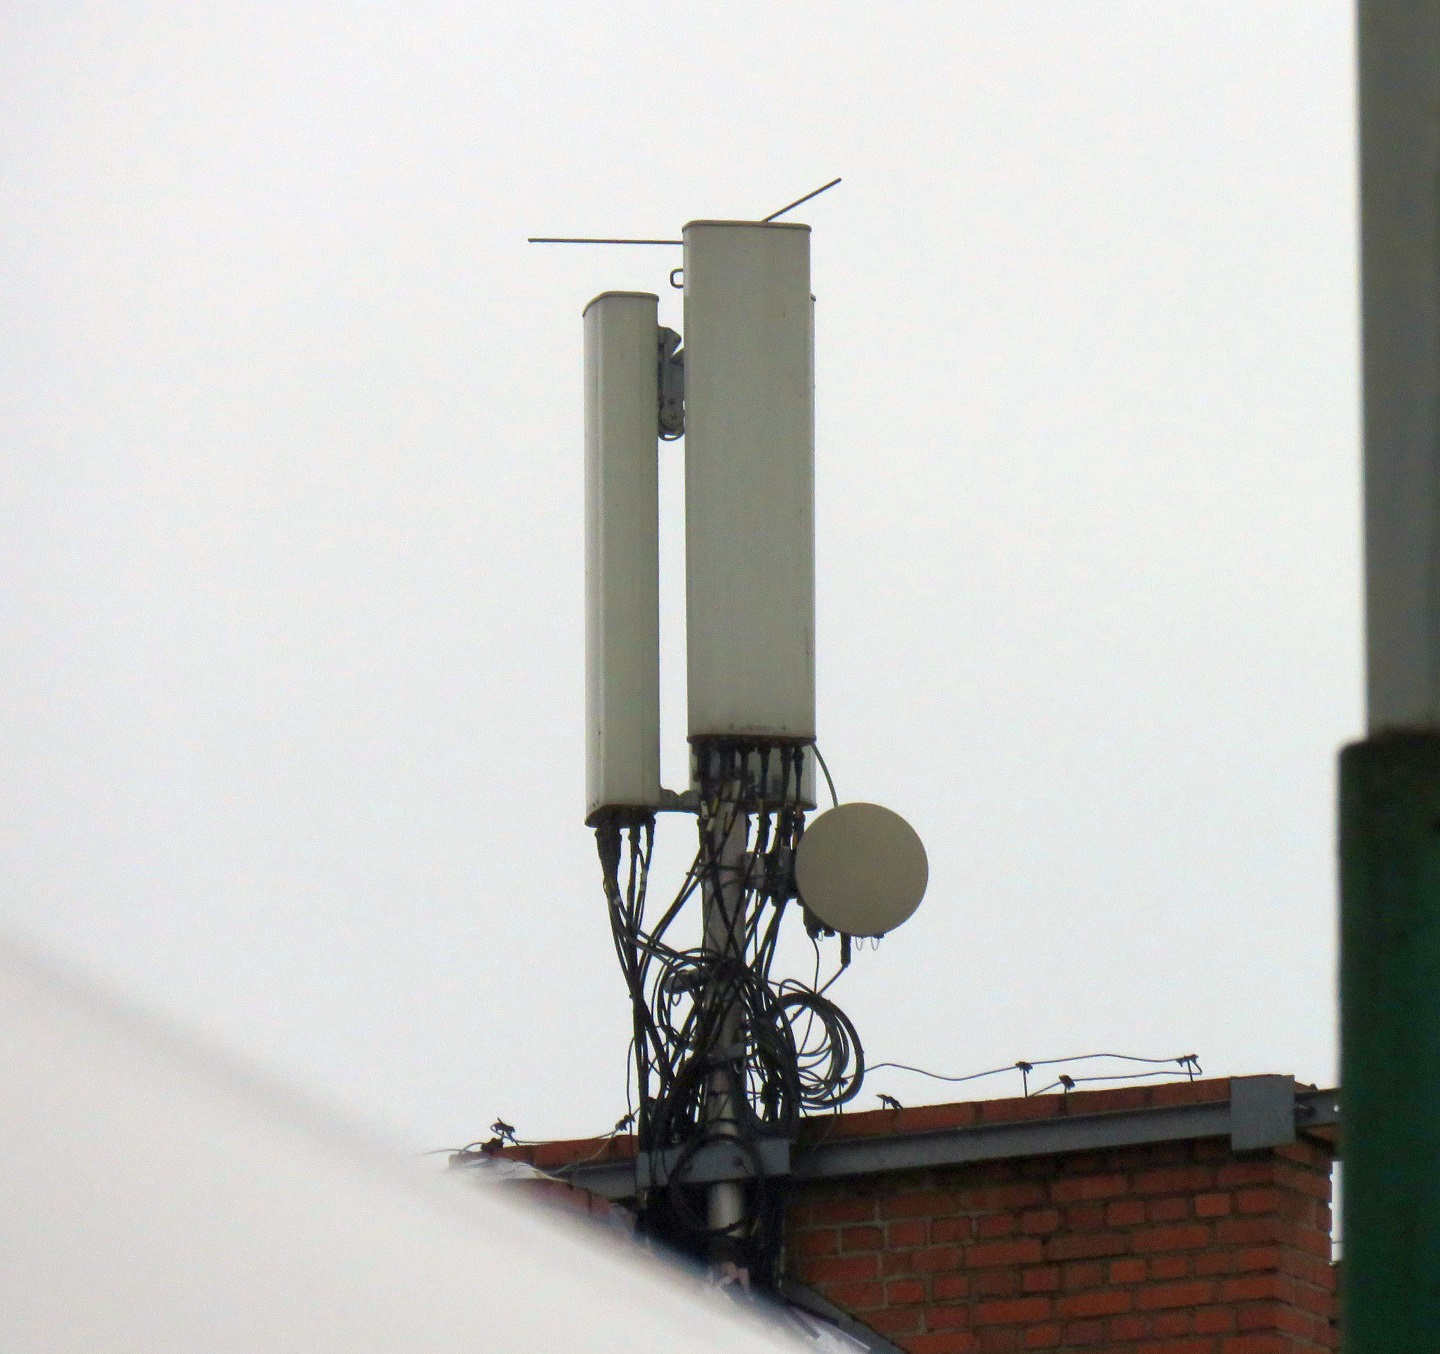 Play's Huawei antennas and RRUs